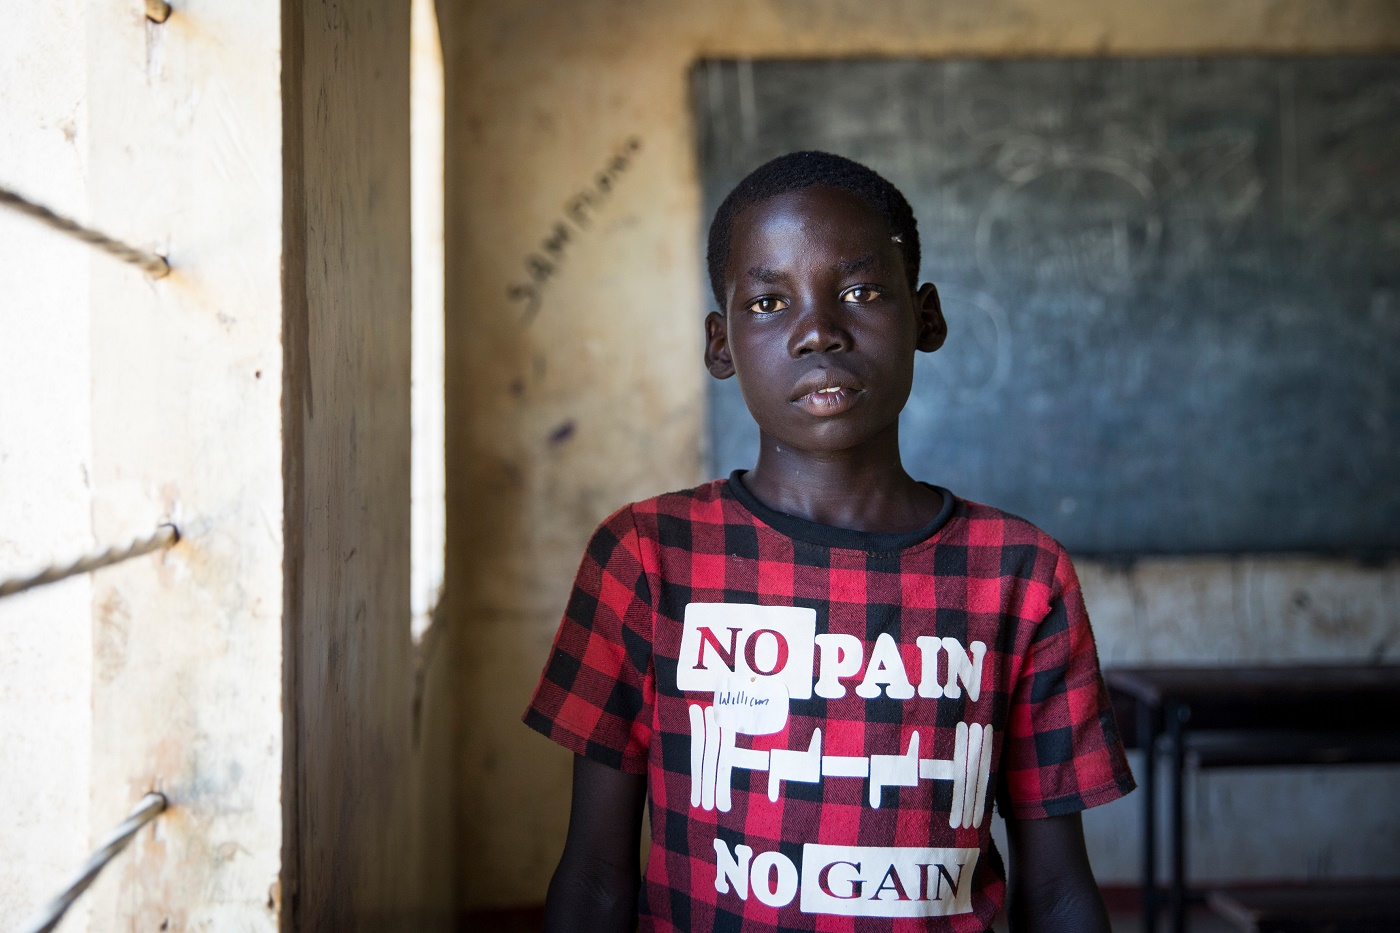 William 11, from South Sudan